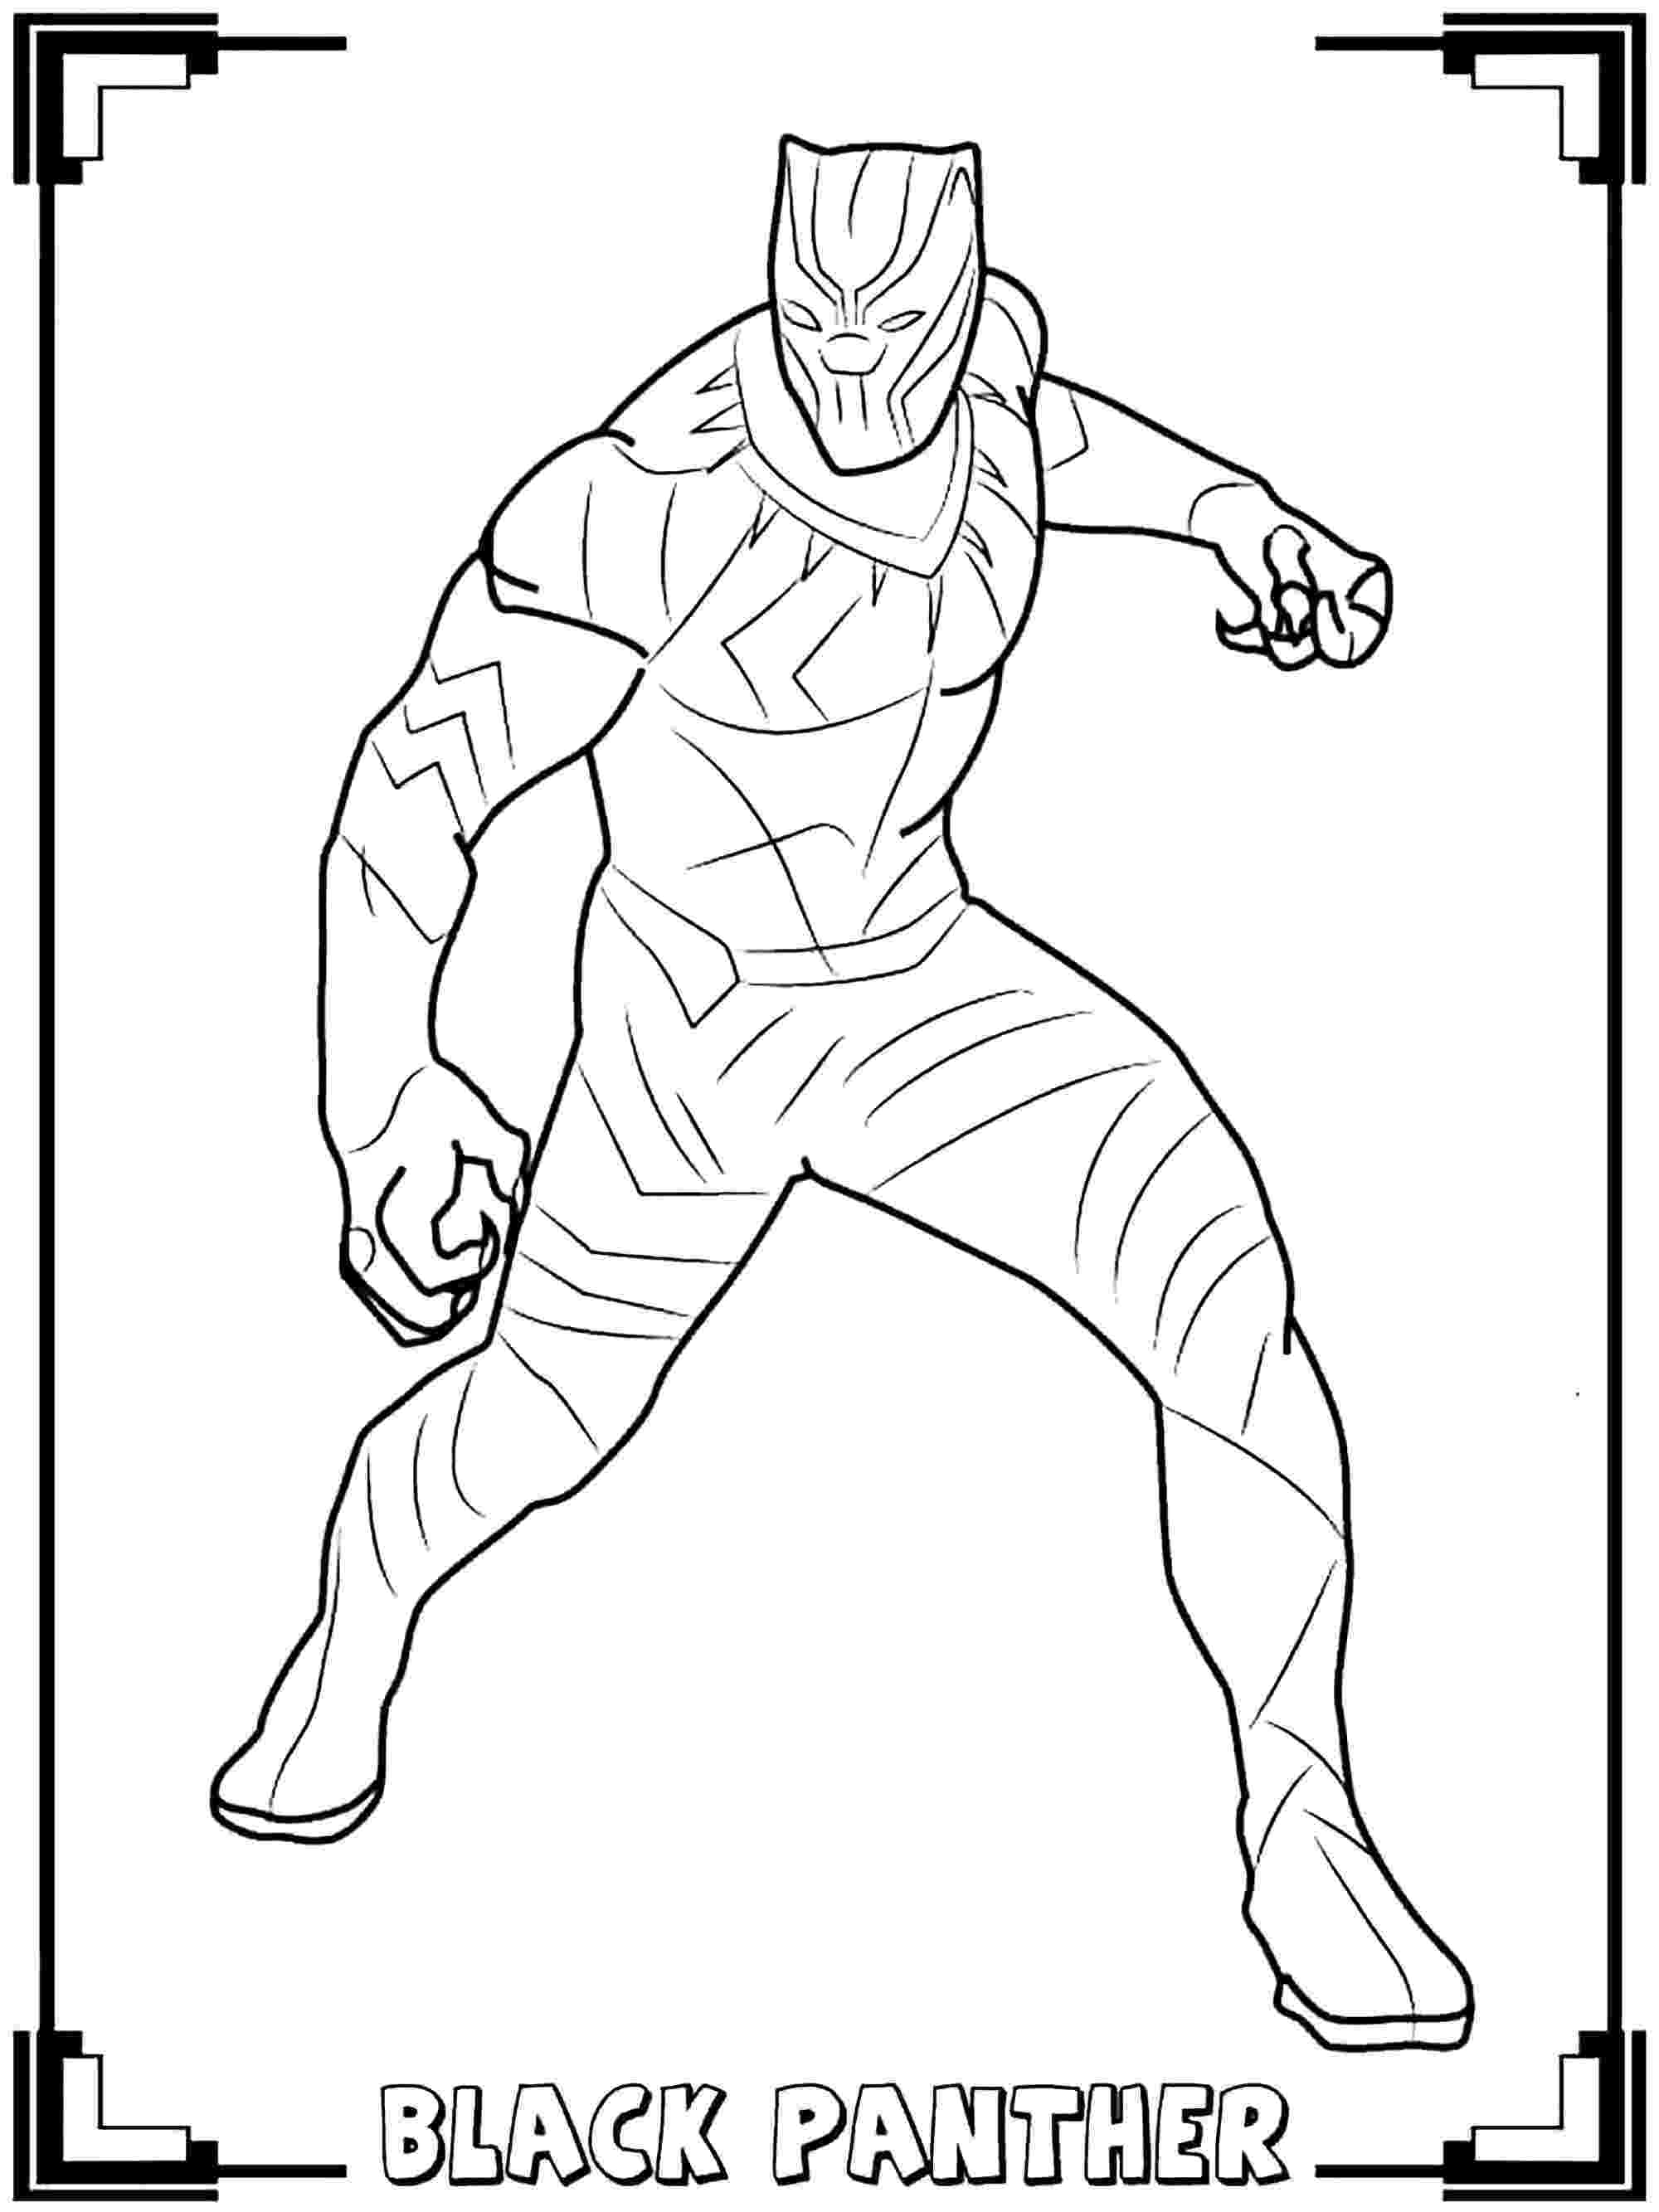 panther coloring page how to draw black panther black panther 2018 drawing panther coloring page